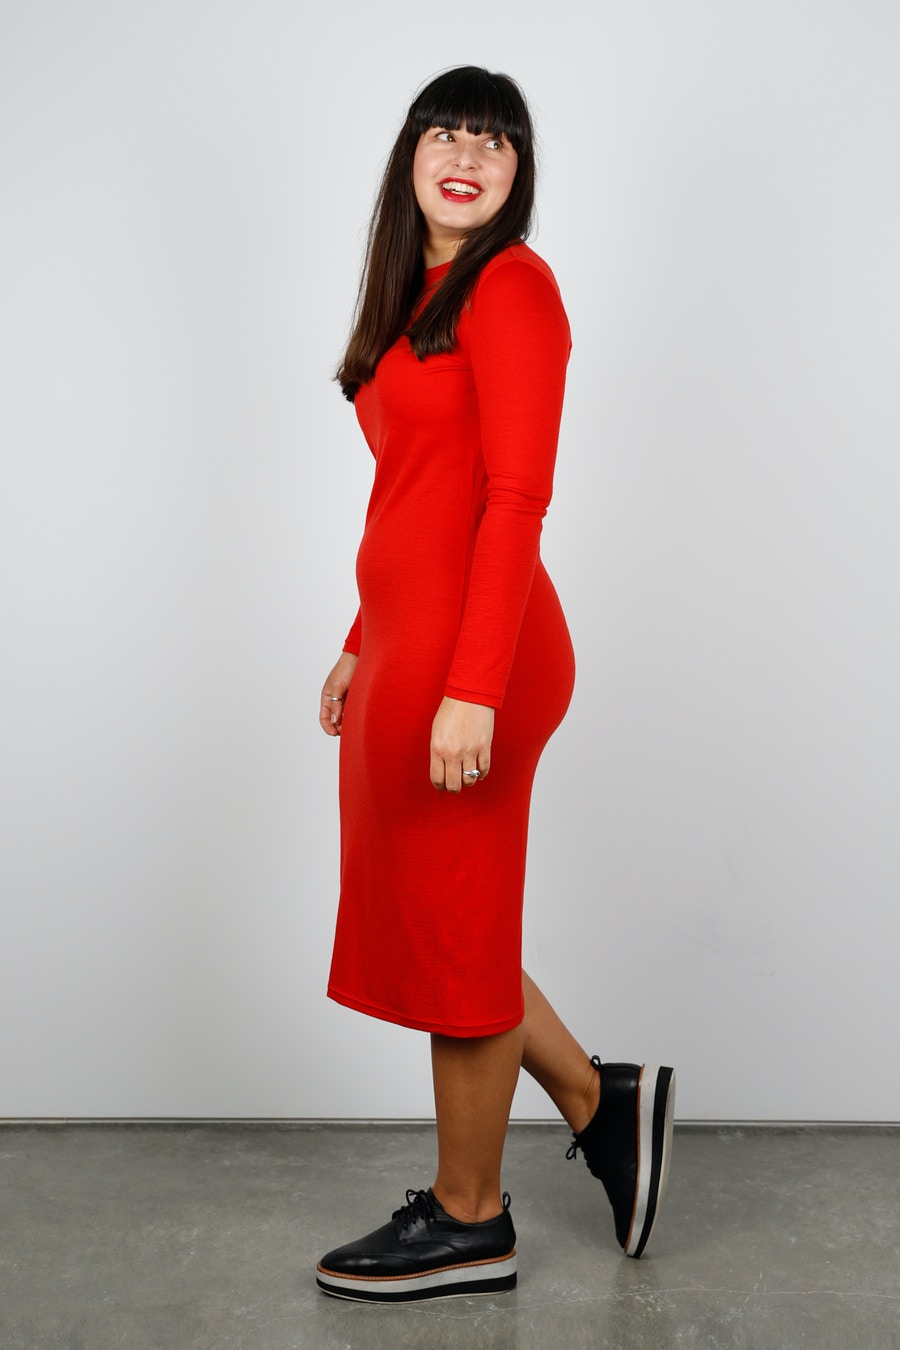 Side poppy nikko dress side